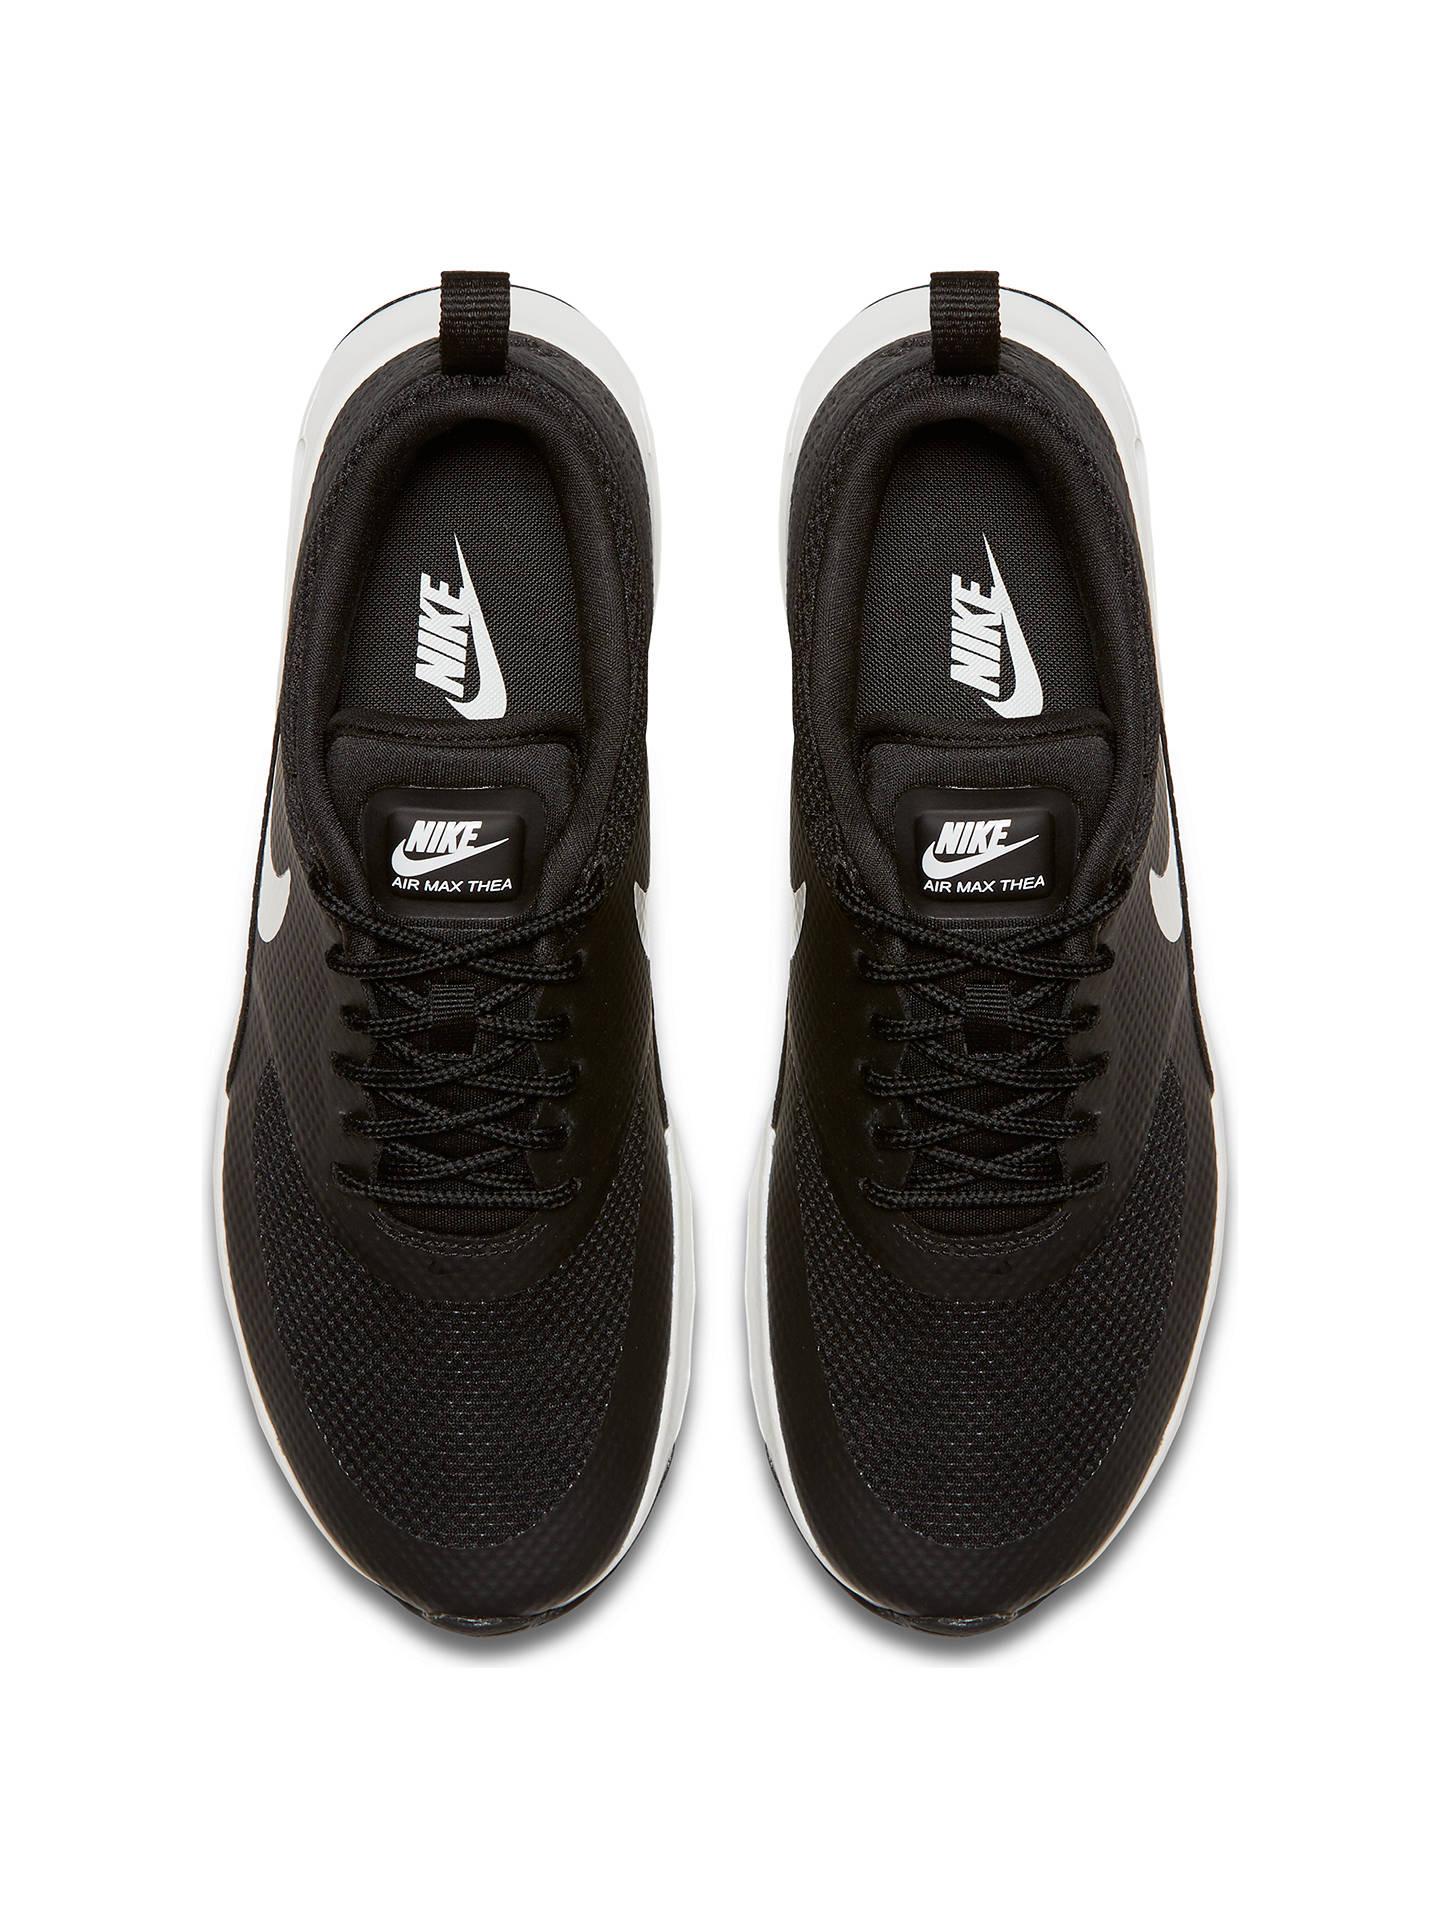 Nike Air Max Thea Women's Trainers at